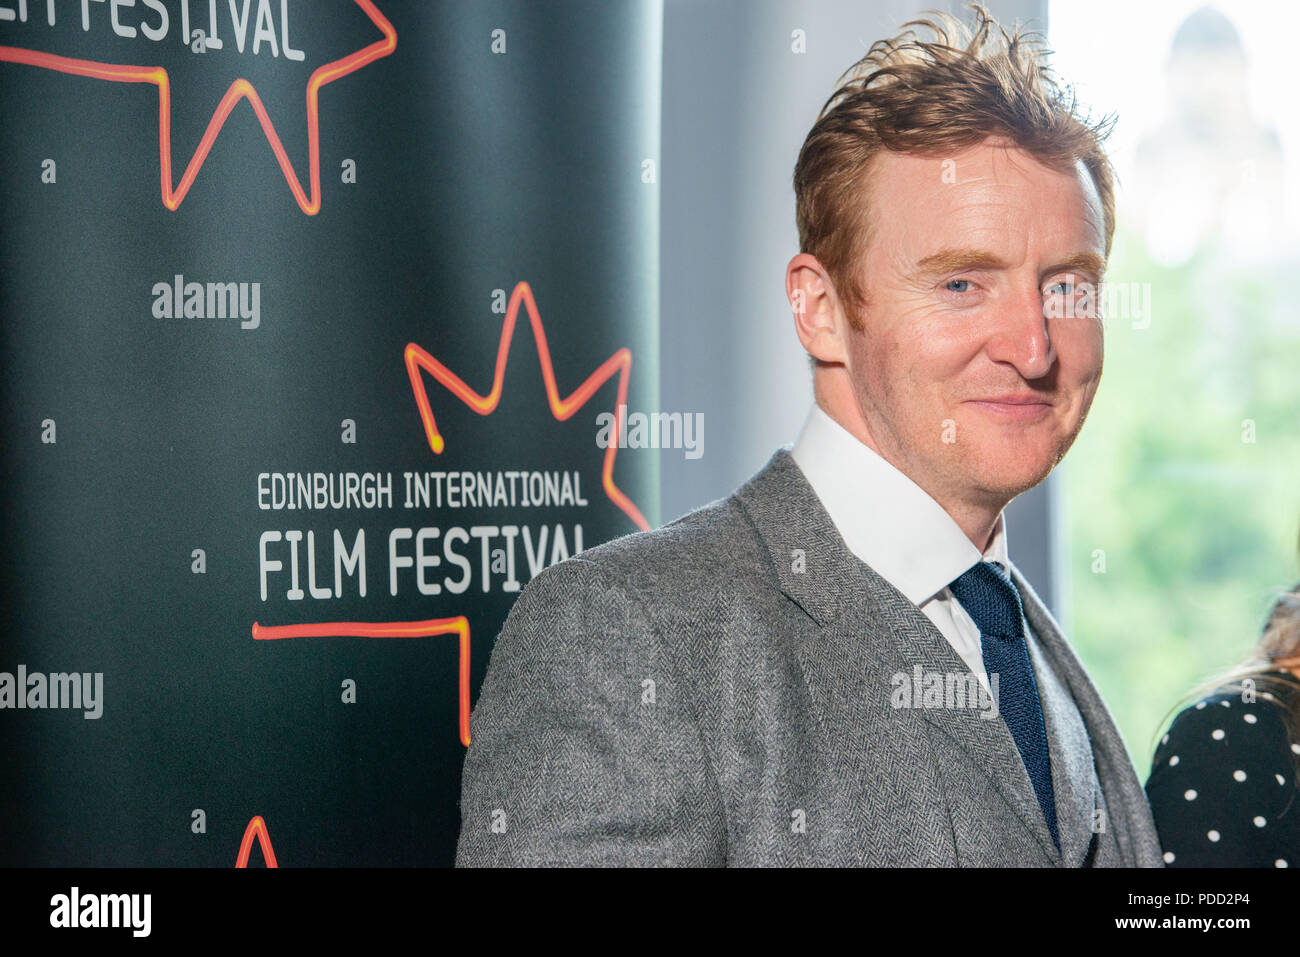 www.iangeorgesonphotography.co.uk EIFF World Premier Calibre at the Caledonian Waldorf Astoria  Pictured: Tony Curran - Stock Image